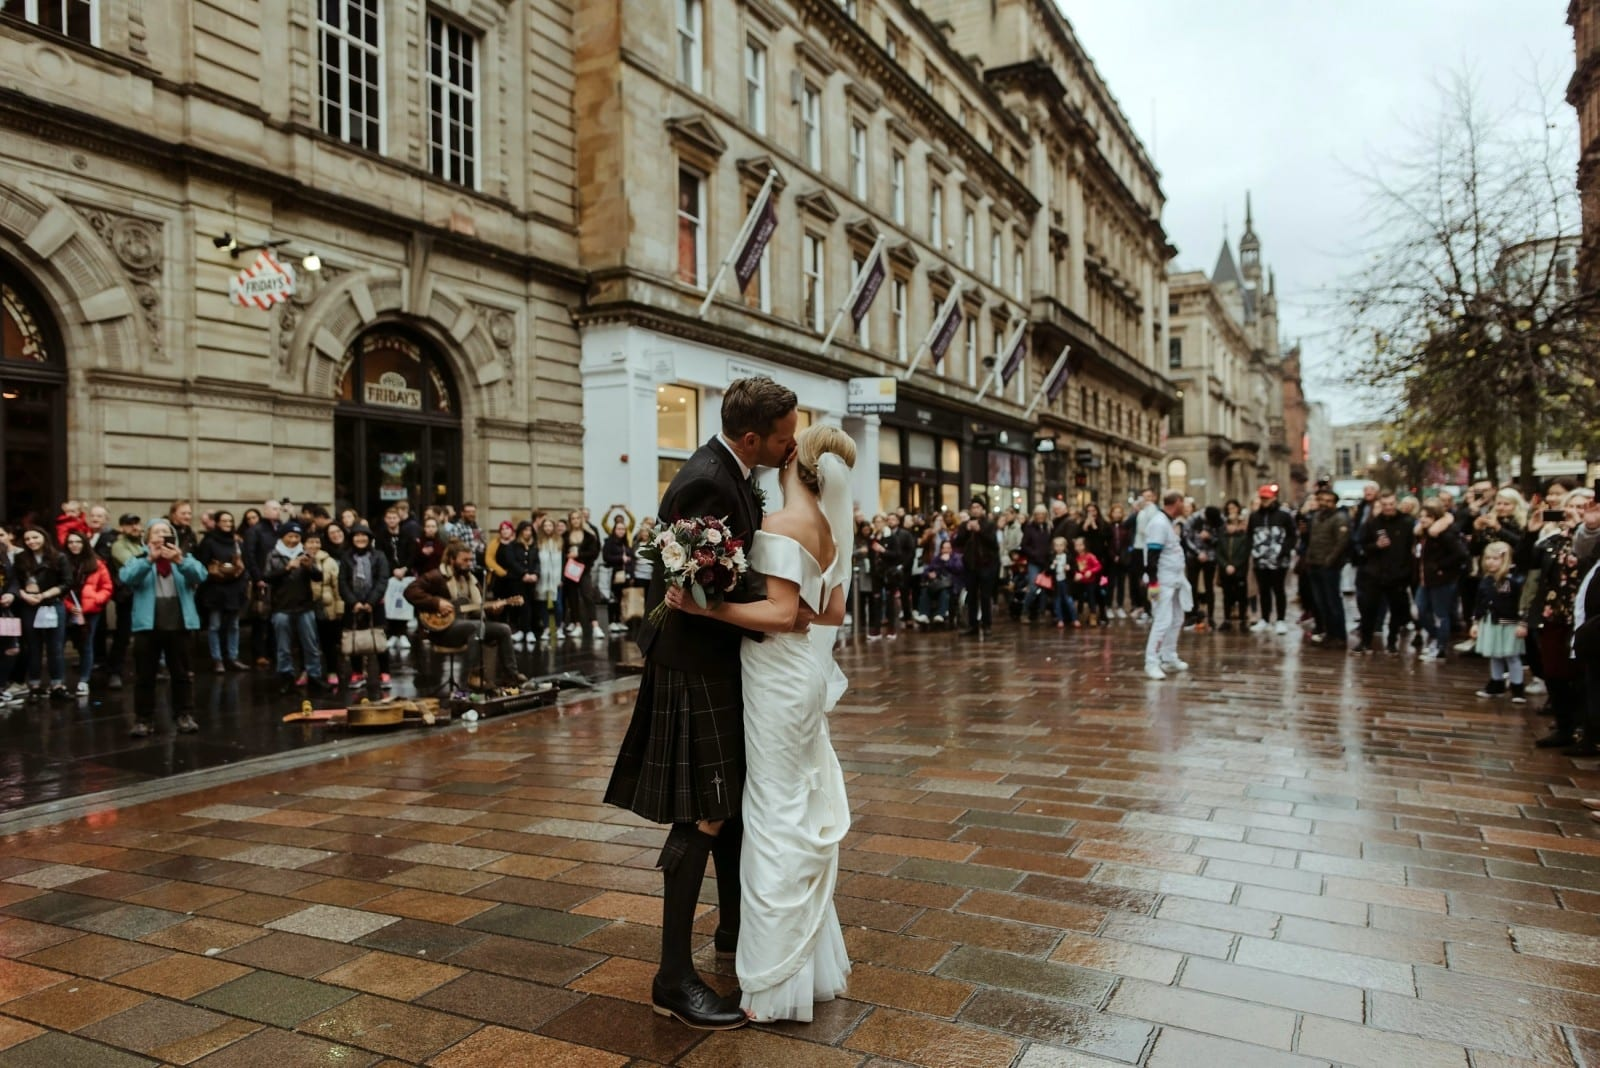 Newlyweds Brought Scotland's Busiest Street To A Standstill As They Enjoyed Their First Dance – Accompanied By Busker